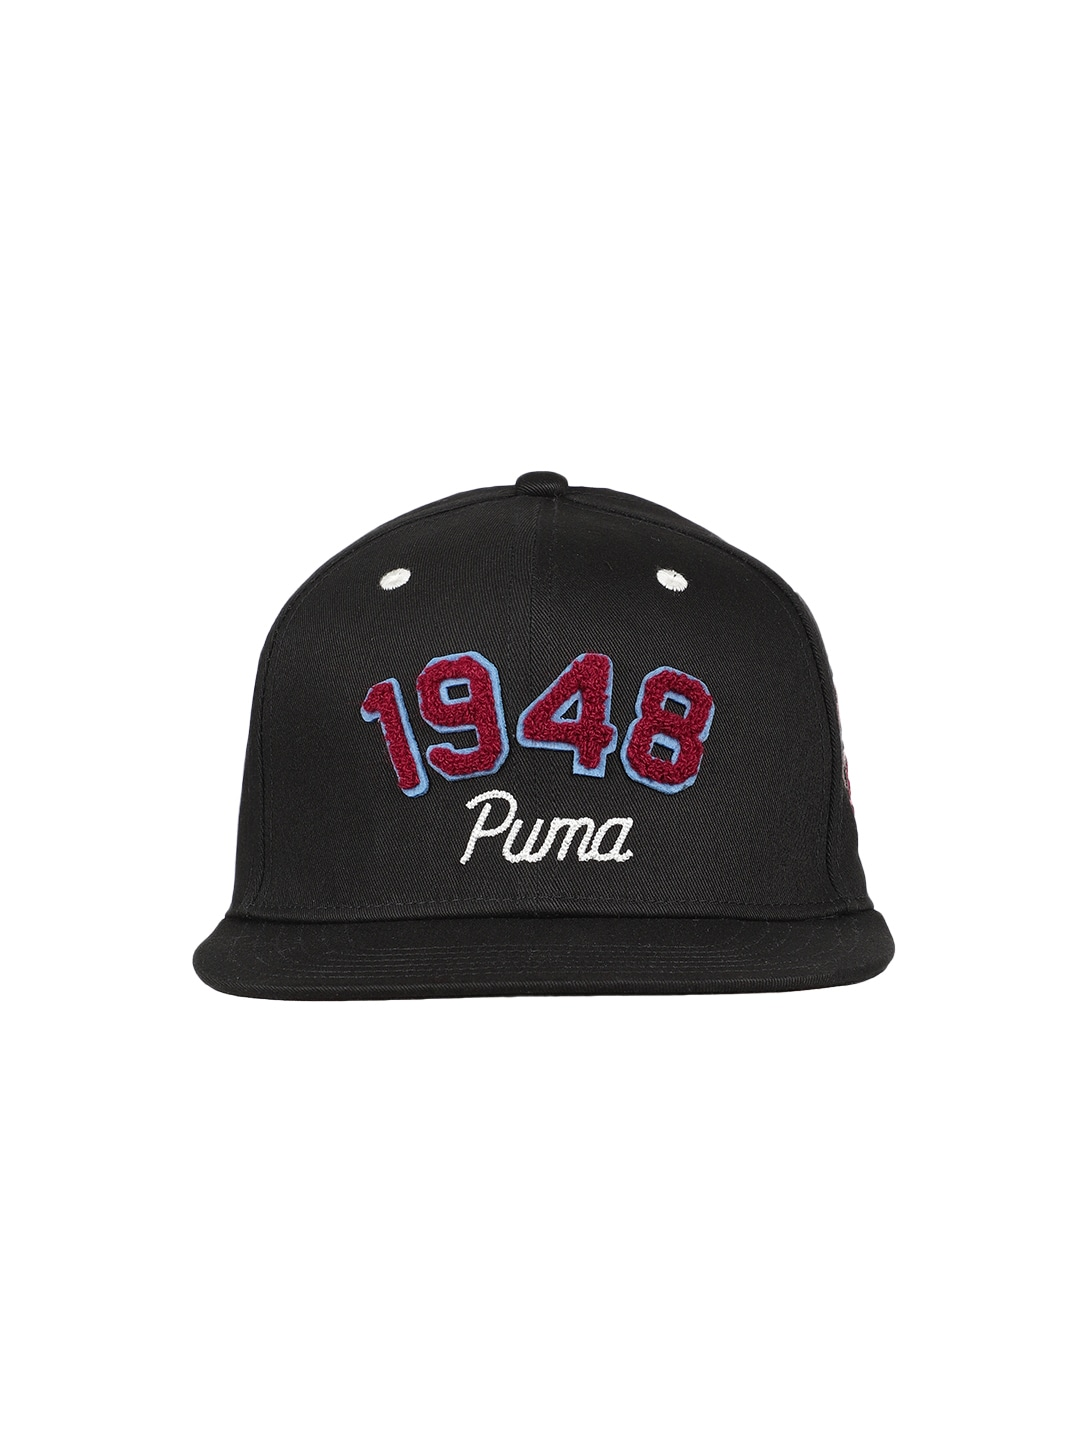 9d04b4202fd Puma Hip Hop Caps - Buy Puma Hip Hop Caps online in India